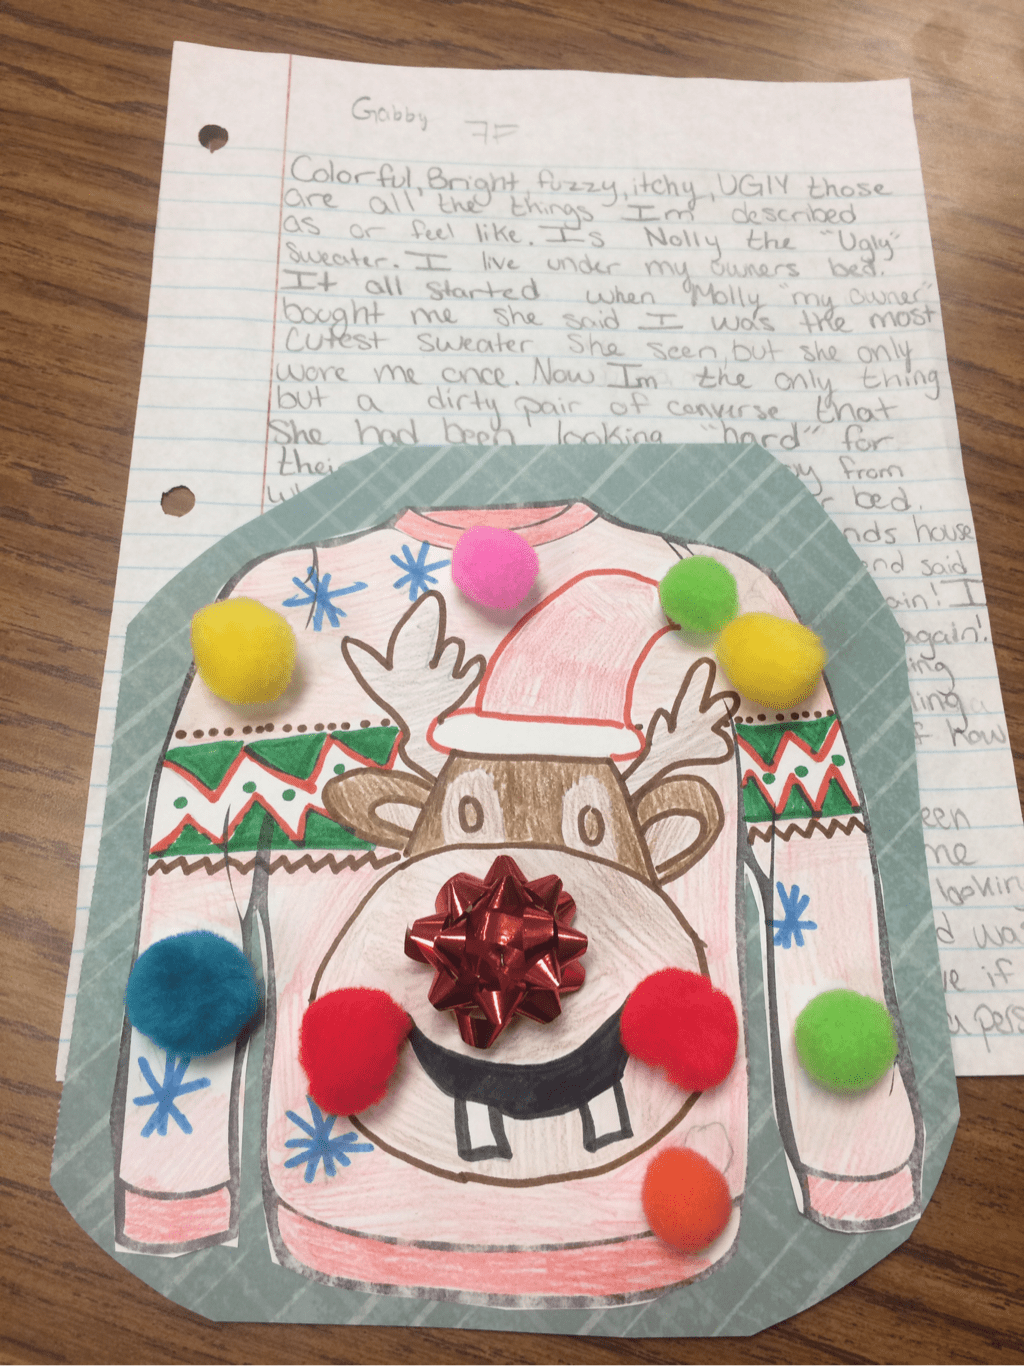 Ugly Christmas Sweater Project. 7th graders created ugly Holiday sweaters and then wrote from the perspective of their sweater!